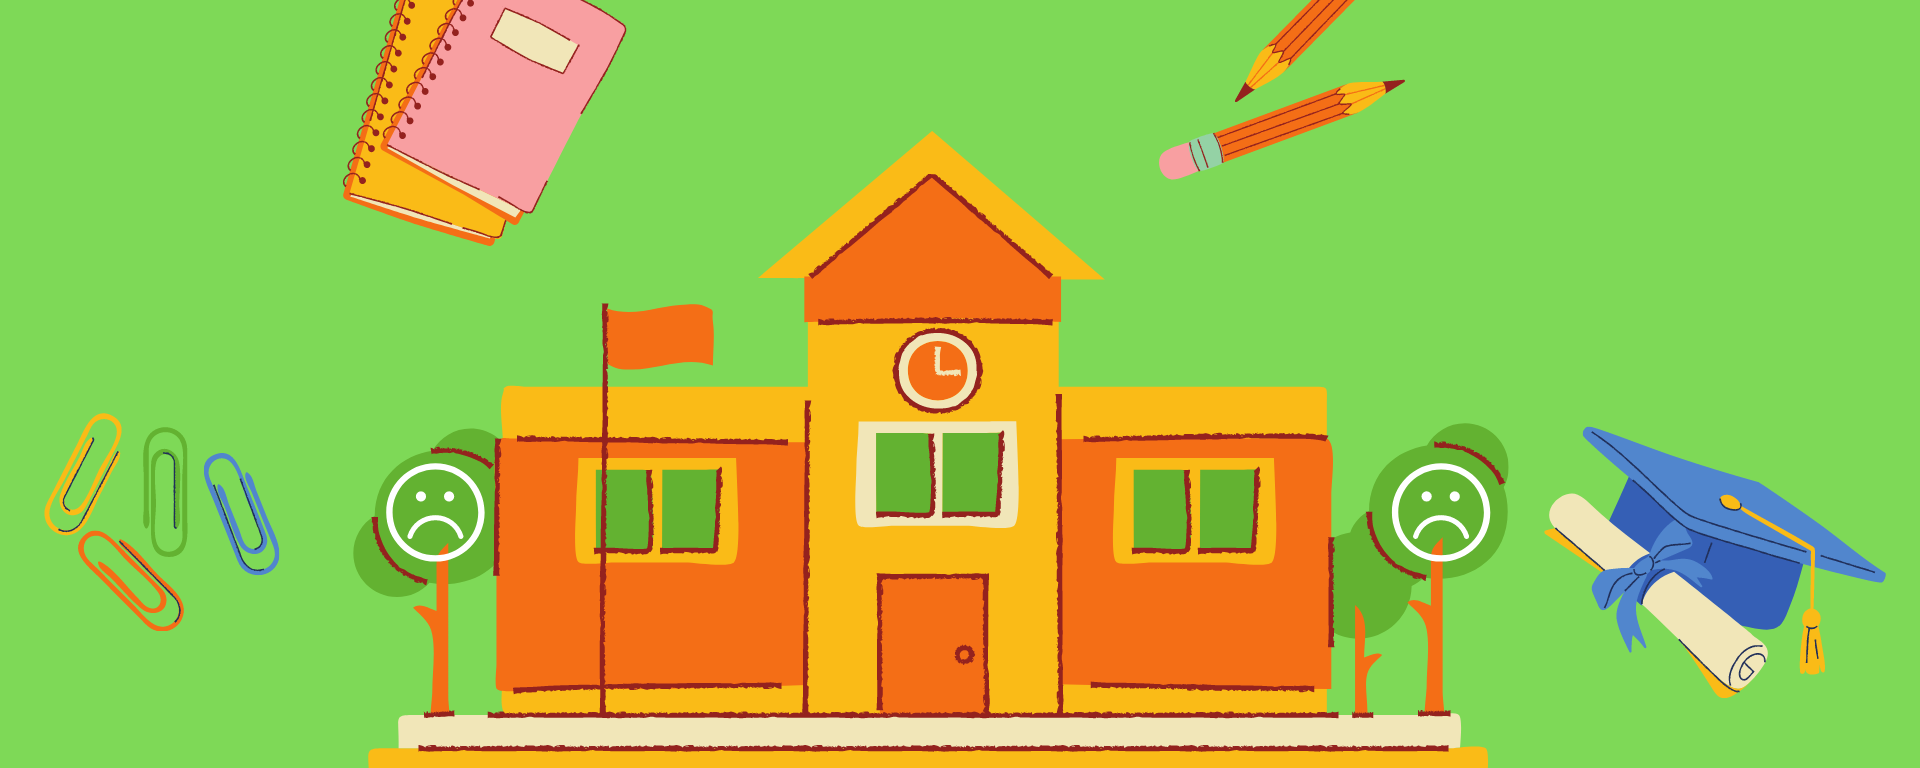 An illustration of a school and other school related objects against a green background